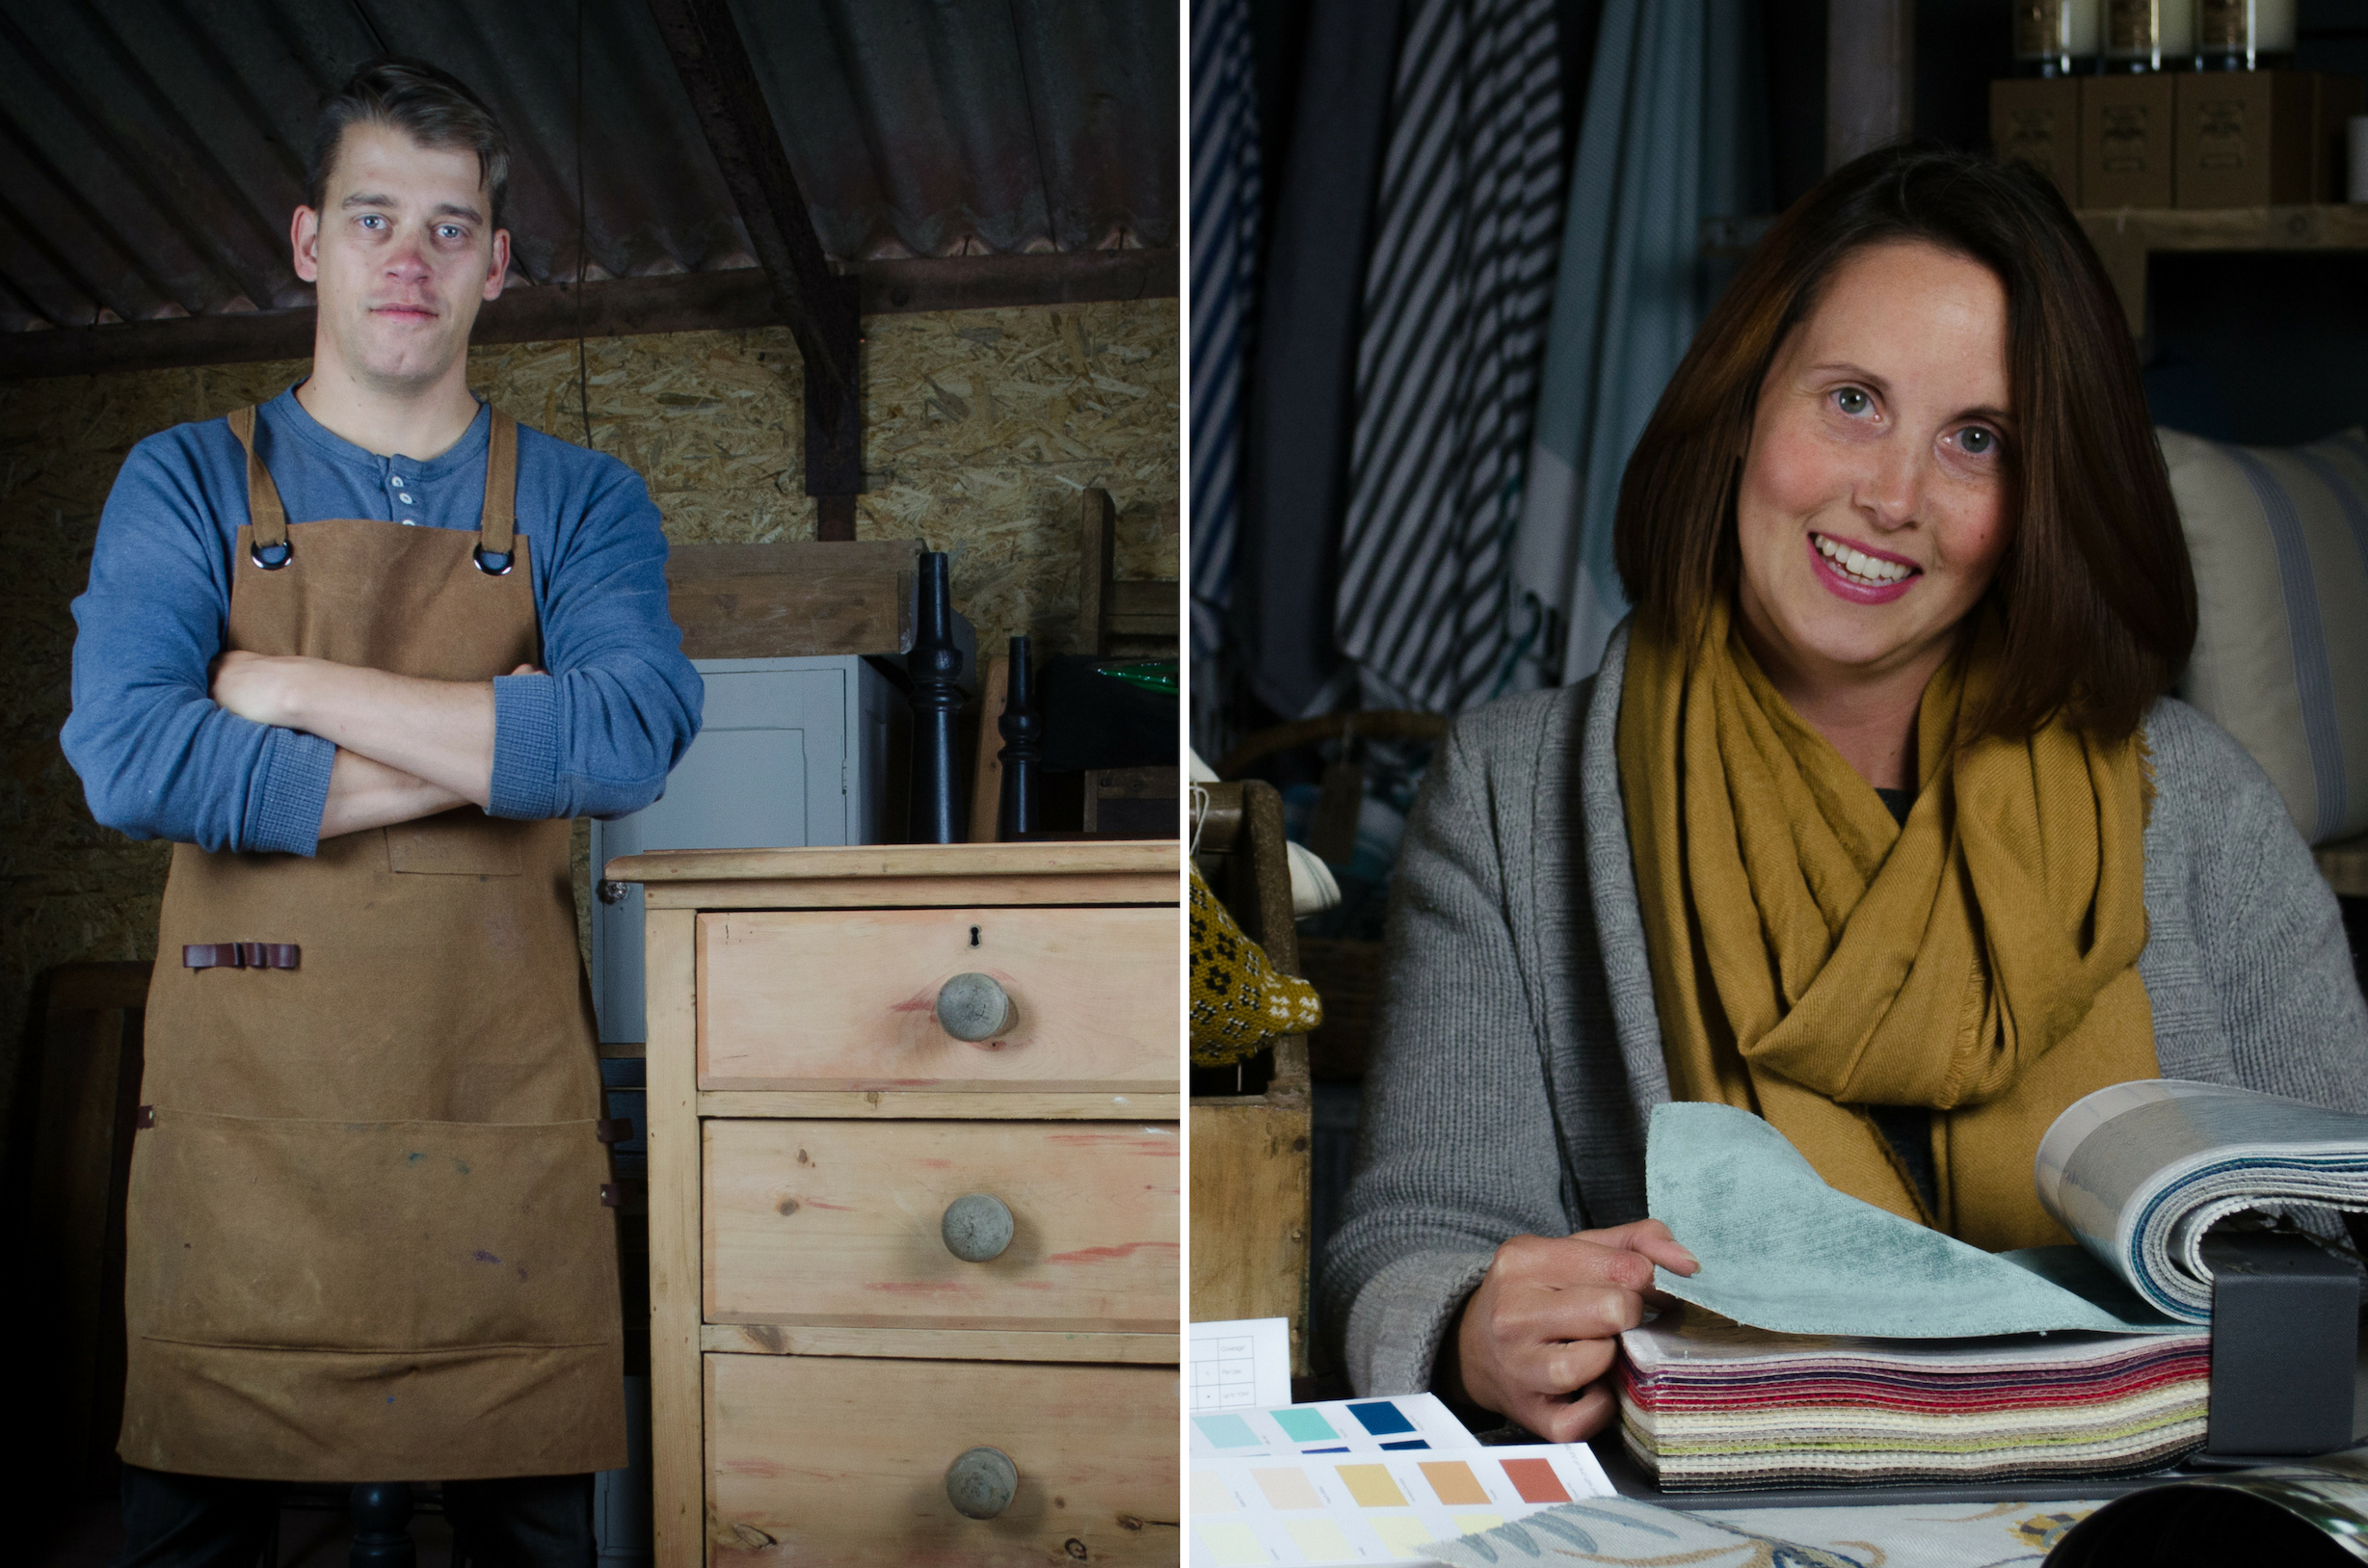 Amy and Shaun, owners and founders of Relish Lifestyle Store